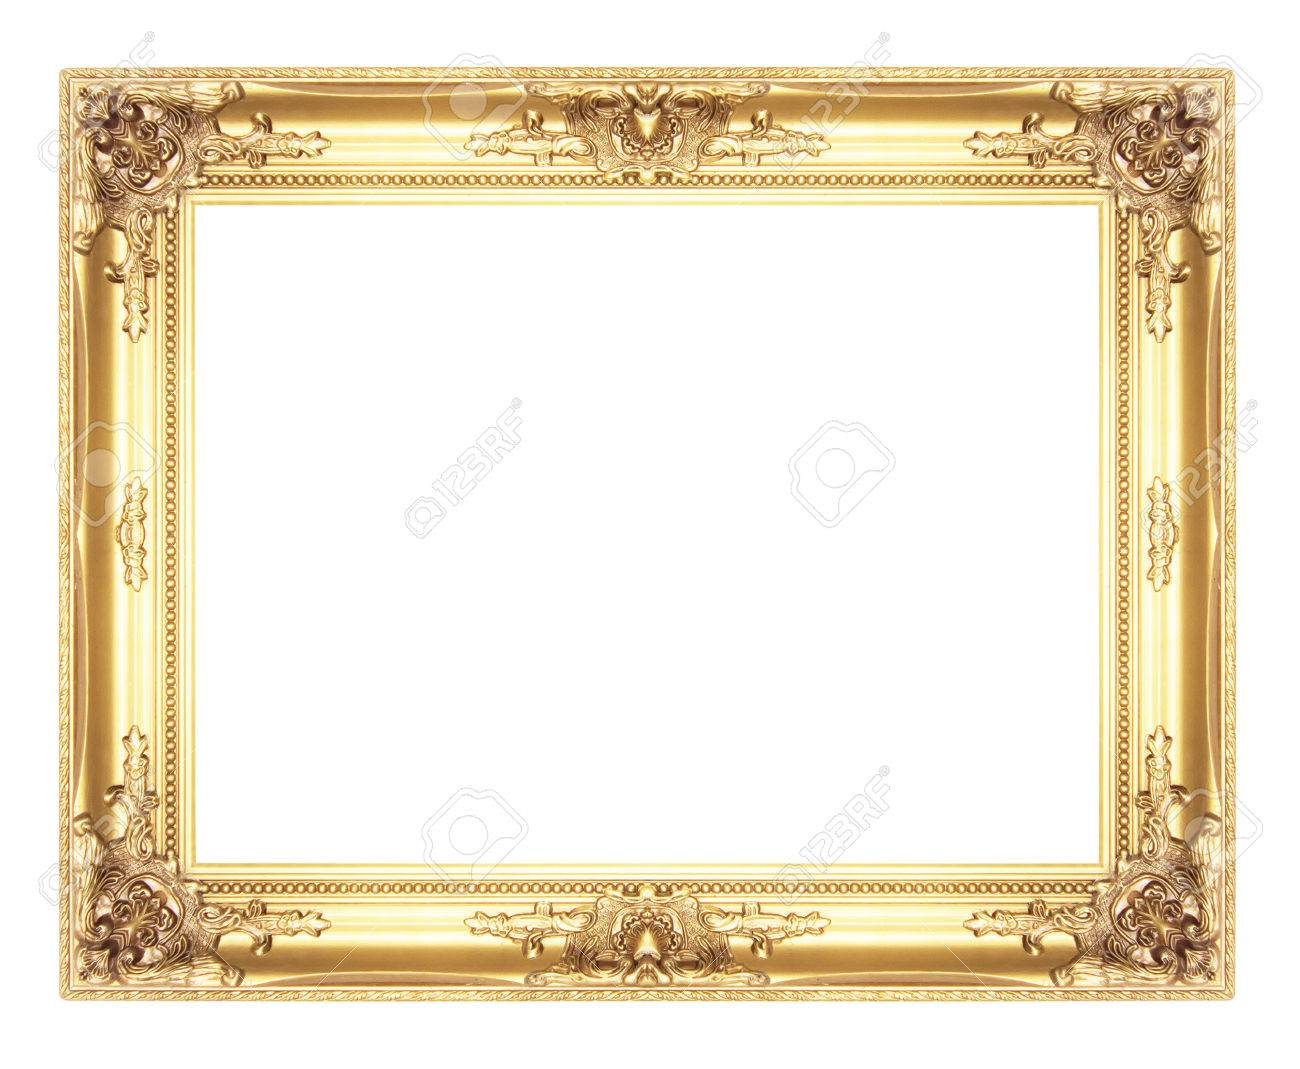 Old Antique Gold Picture Frames. Isolated On White Background Stock ...